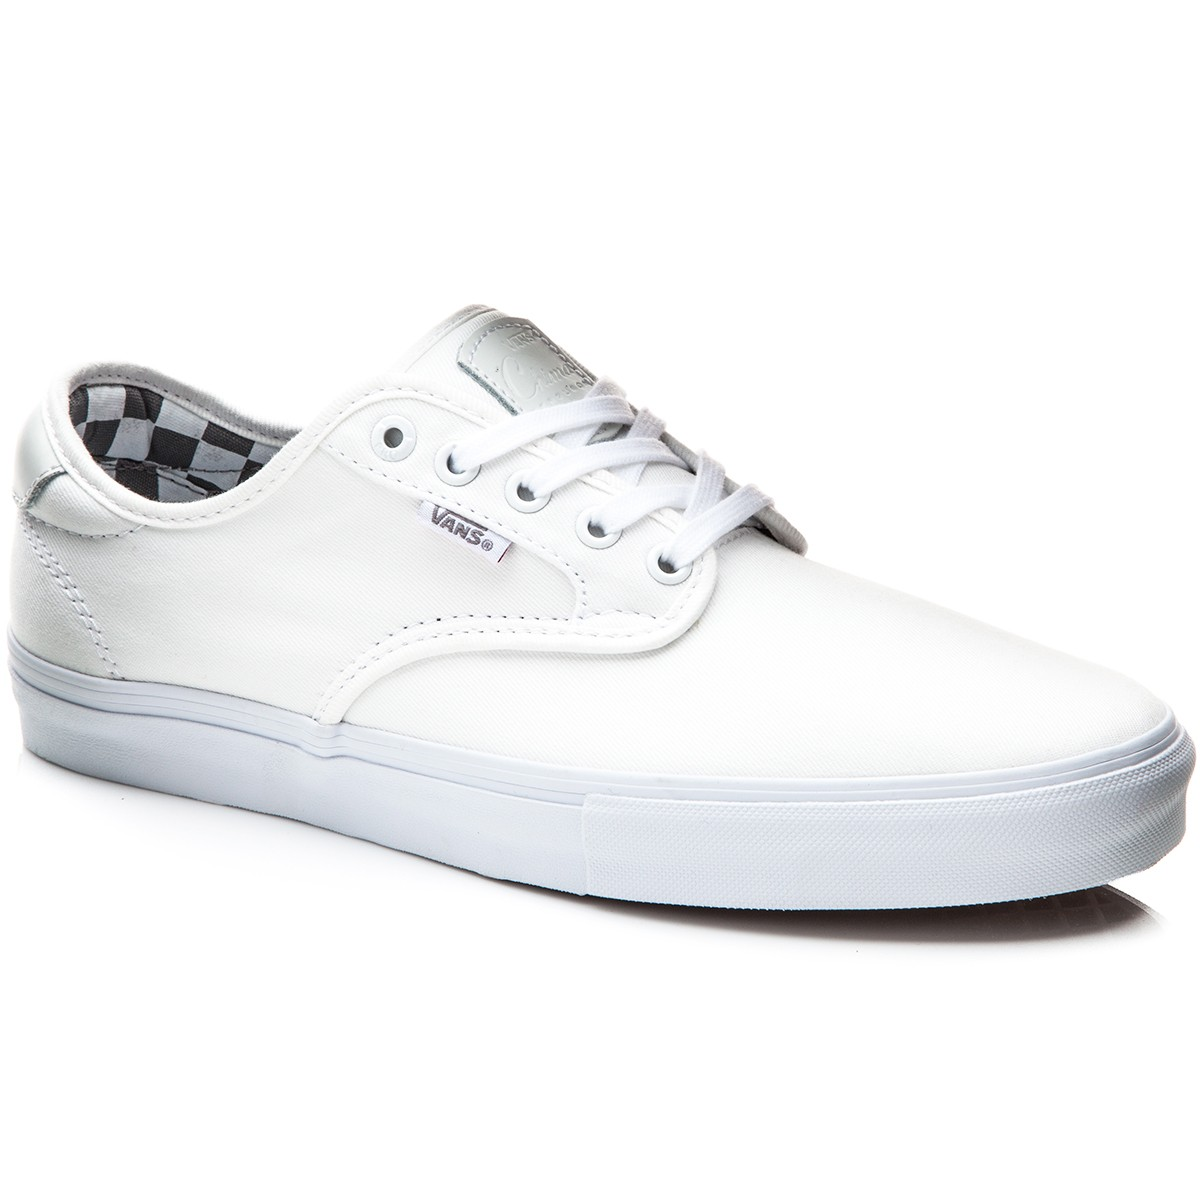 Vans Chima Ferguson Pro Shoes - Mono White/White - 8.0